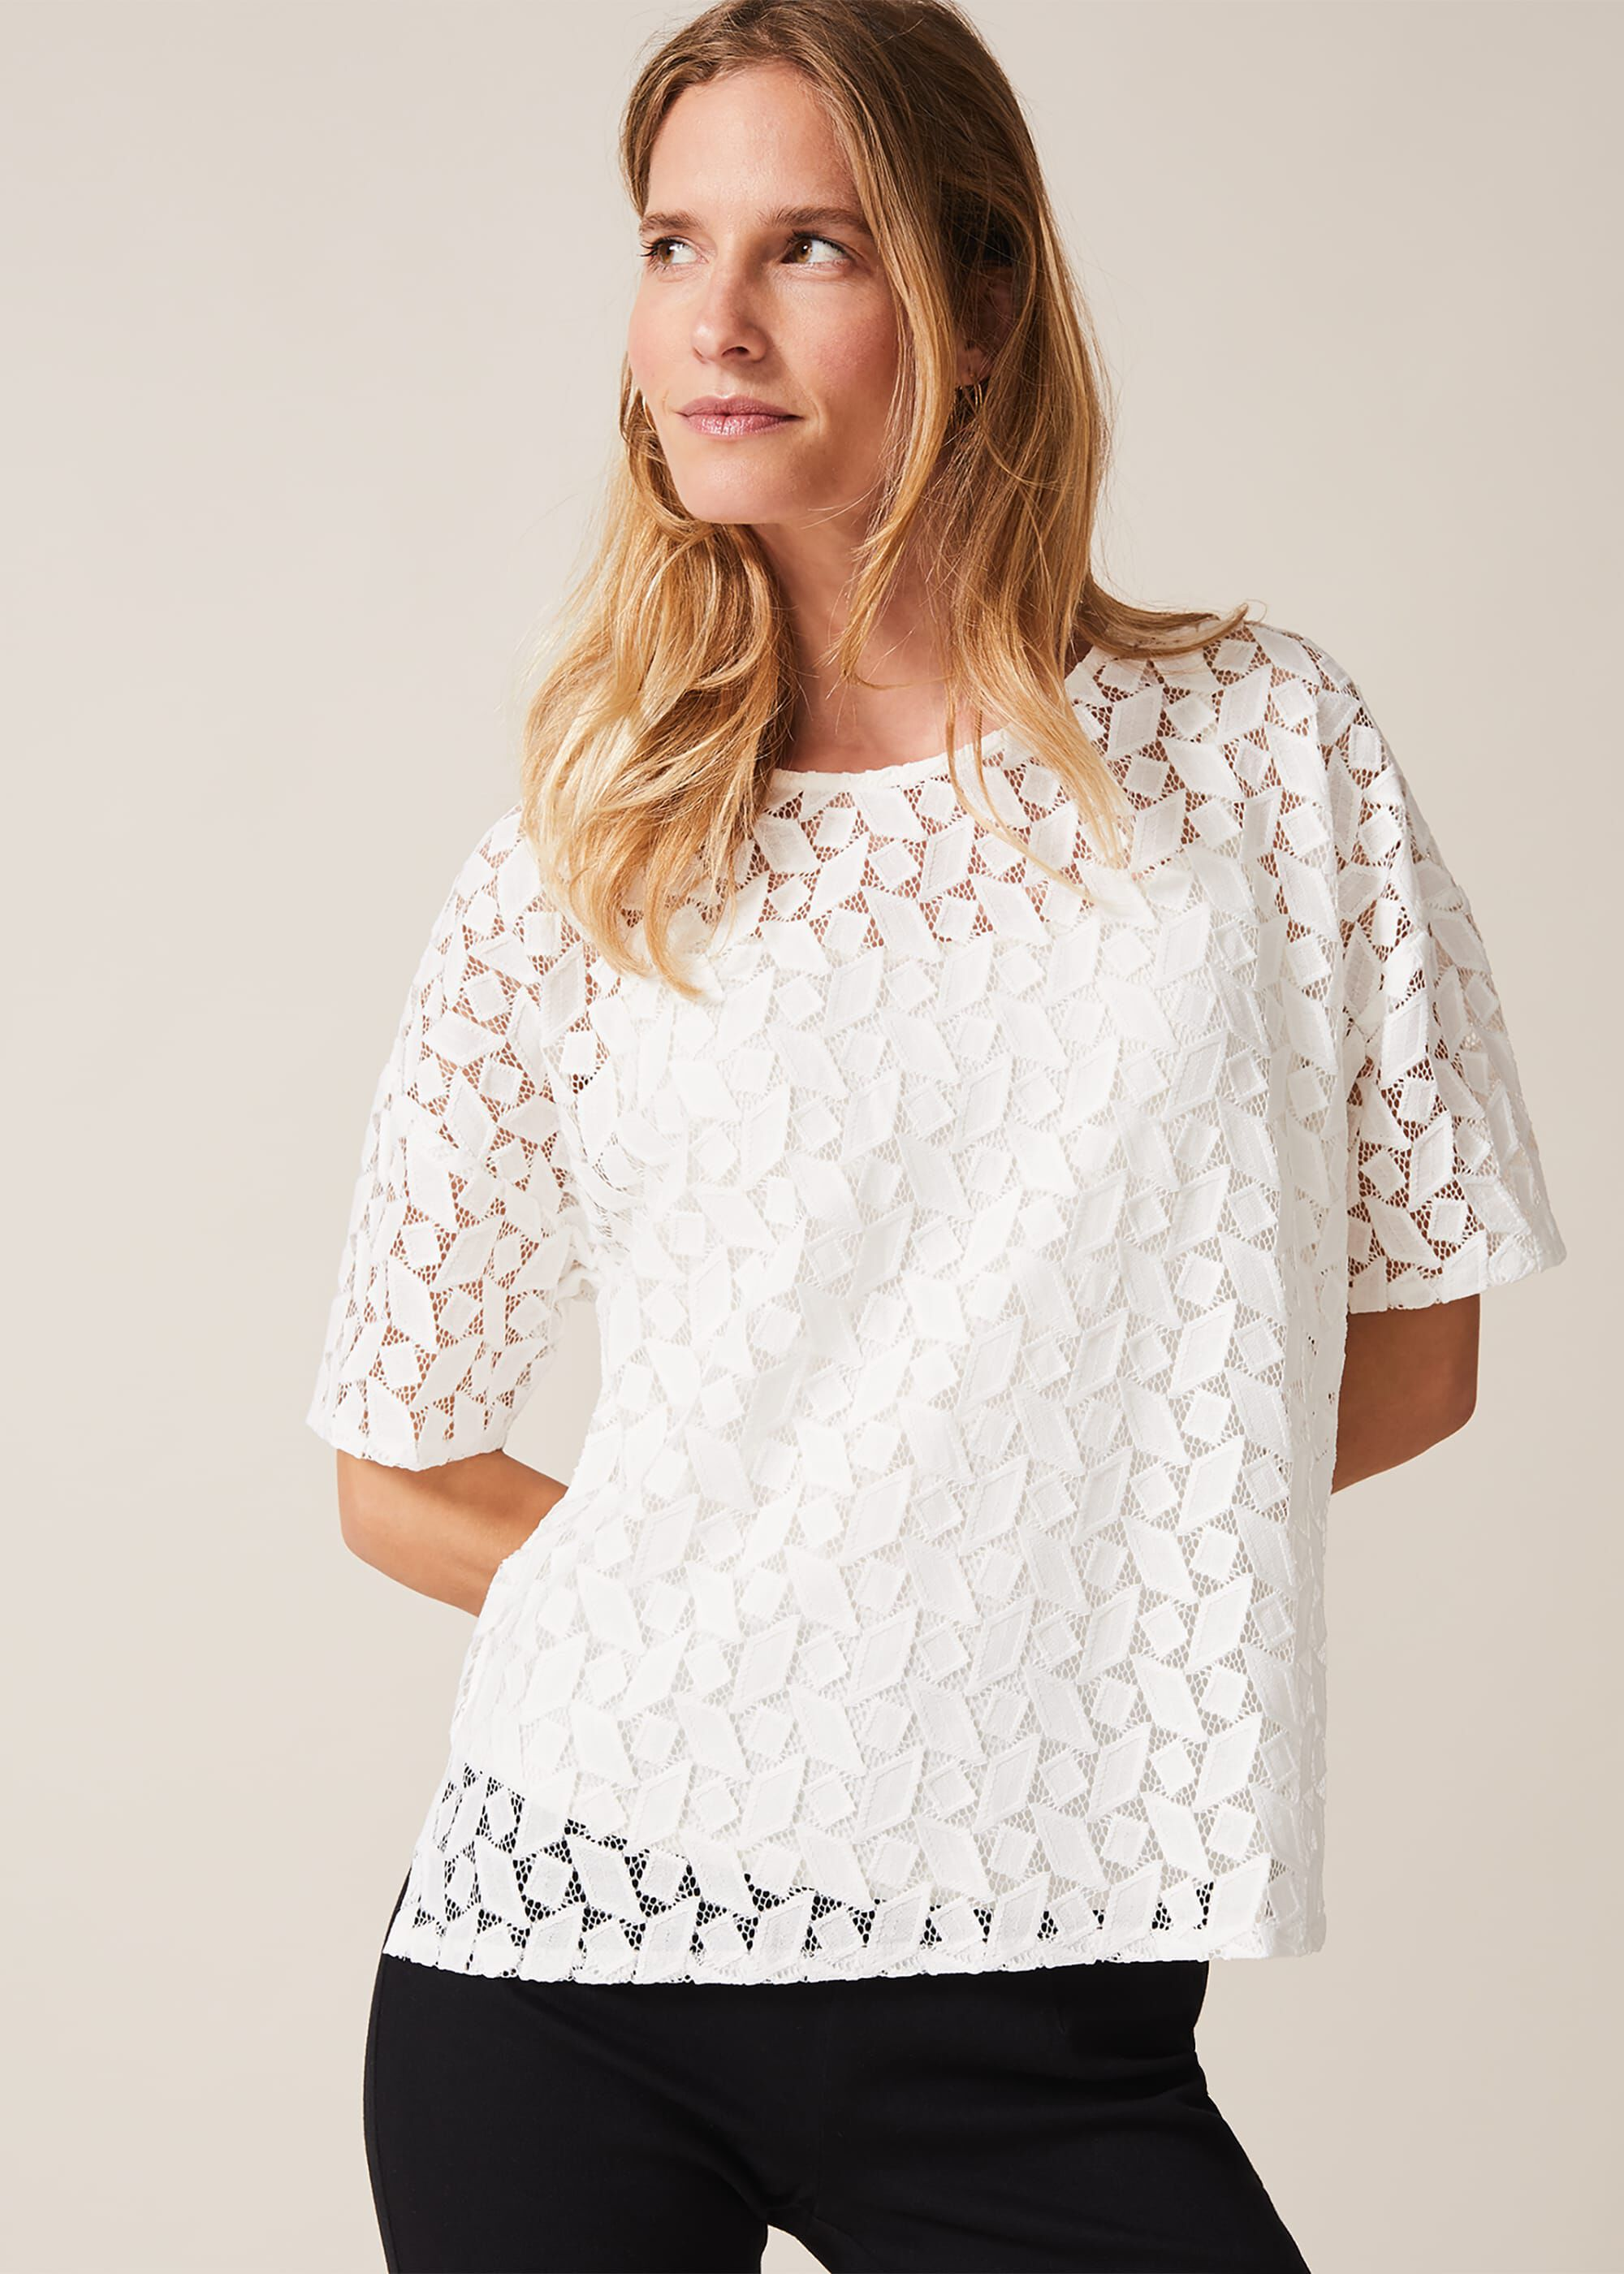 Phase Eight Rio Geo Textured Lace Top, Cream, Tops